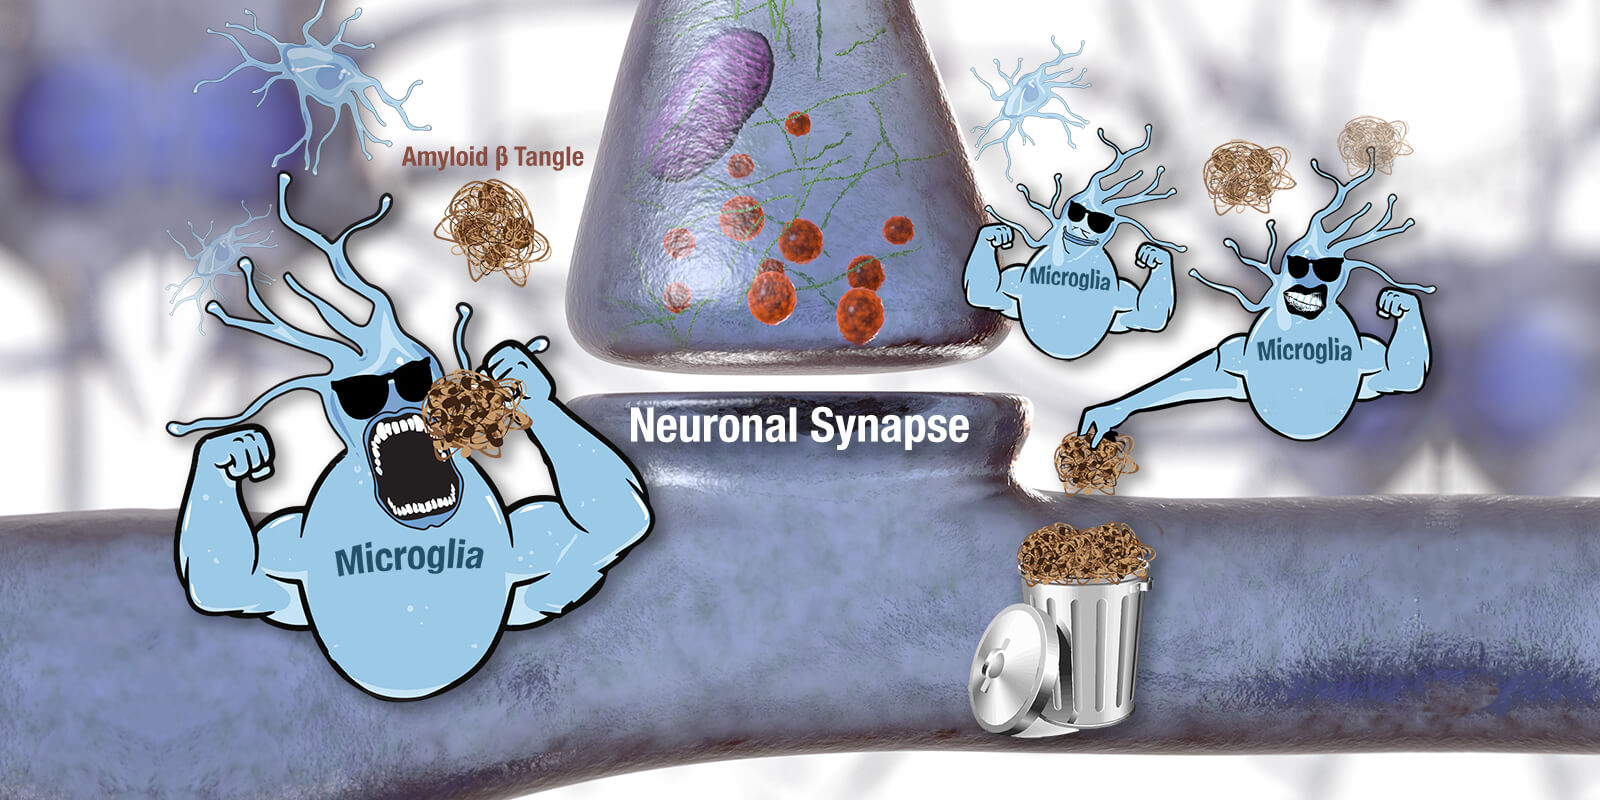 synapse-microglia illustration wide 1600x800.jpg